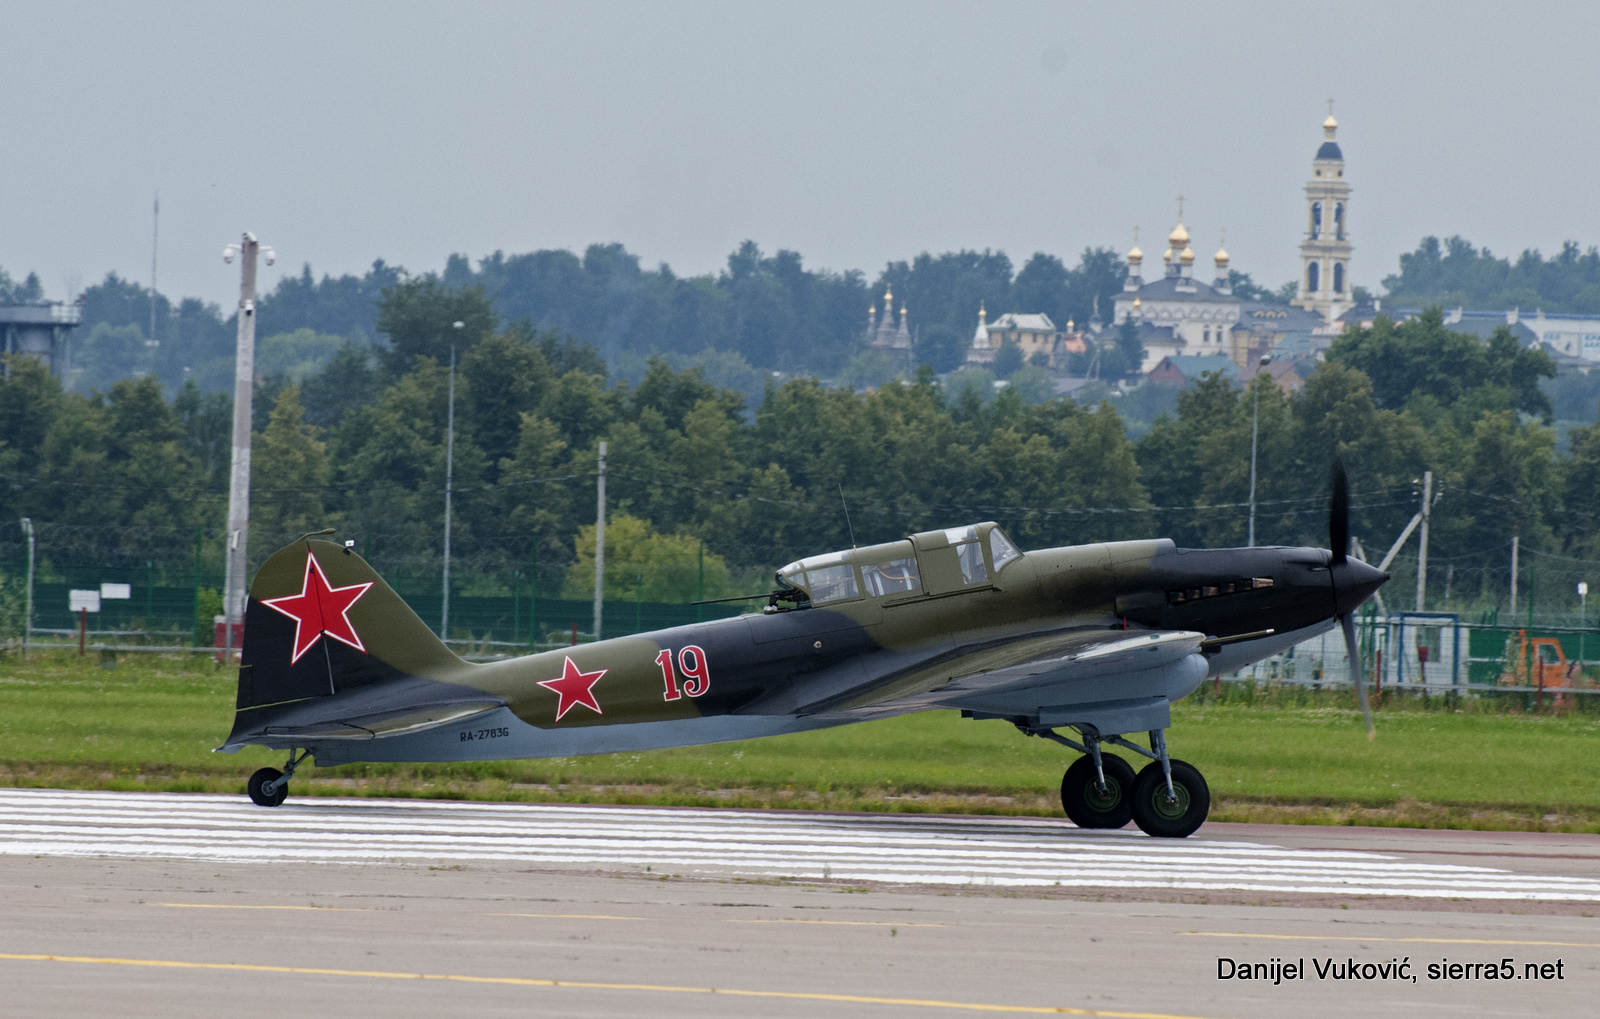 Restored Il-2 was participate in flying program